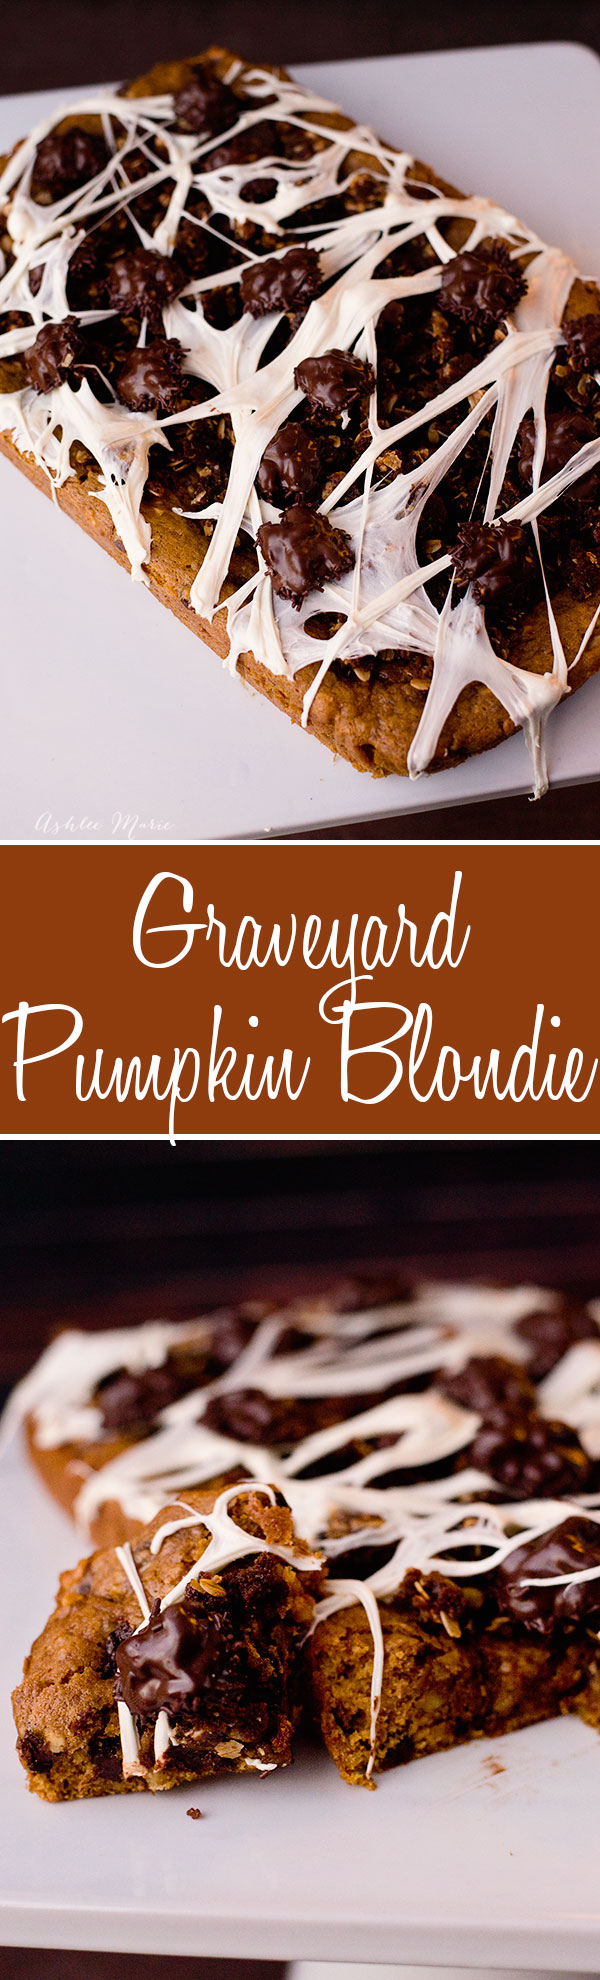 a pumpkin blondie with chocolate chips and toasted walnuts is delicious, add a gingersnap crumble, some chocolate covered walnut bugs and some marshmallow spider webs and you have a spooky treat